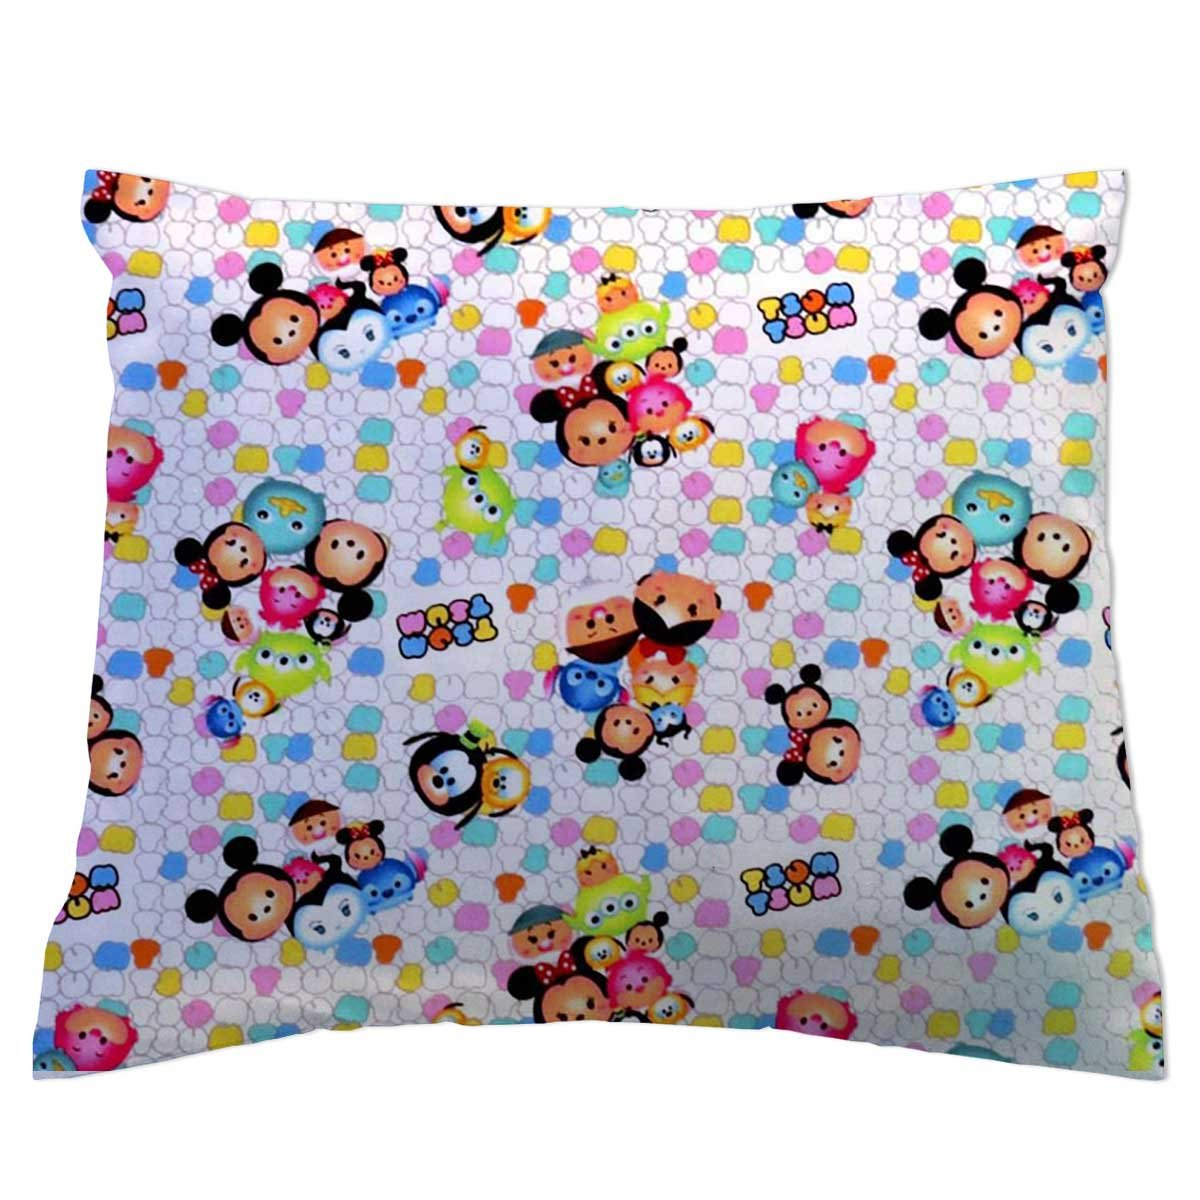 SheetWorld Crib Toddler Pillow Case, 100% Cotton Woven, Tsum Tsum Print, 13 x 17, Made in USA by SHEETWORLD.COM